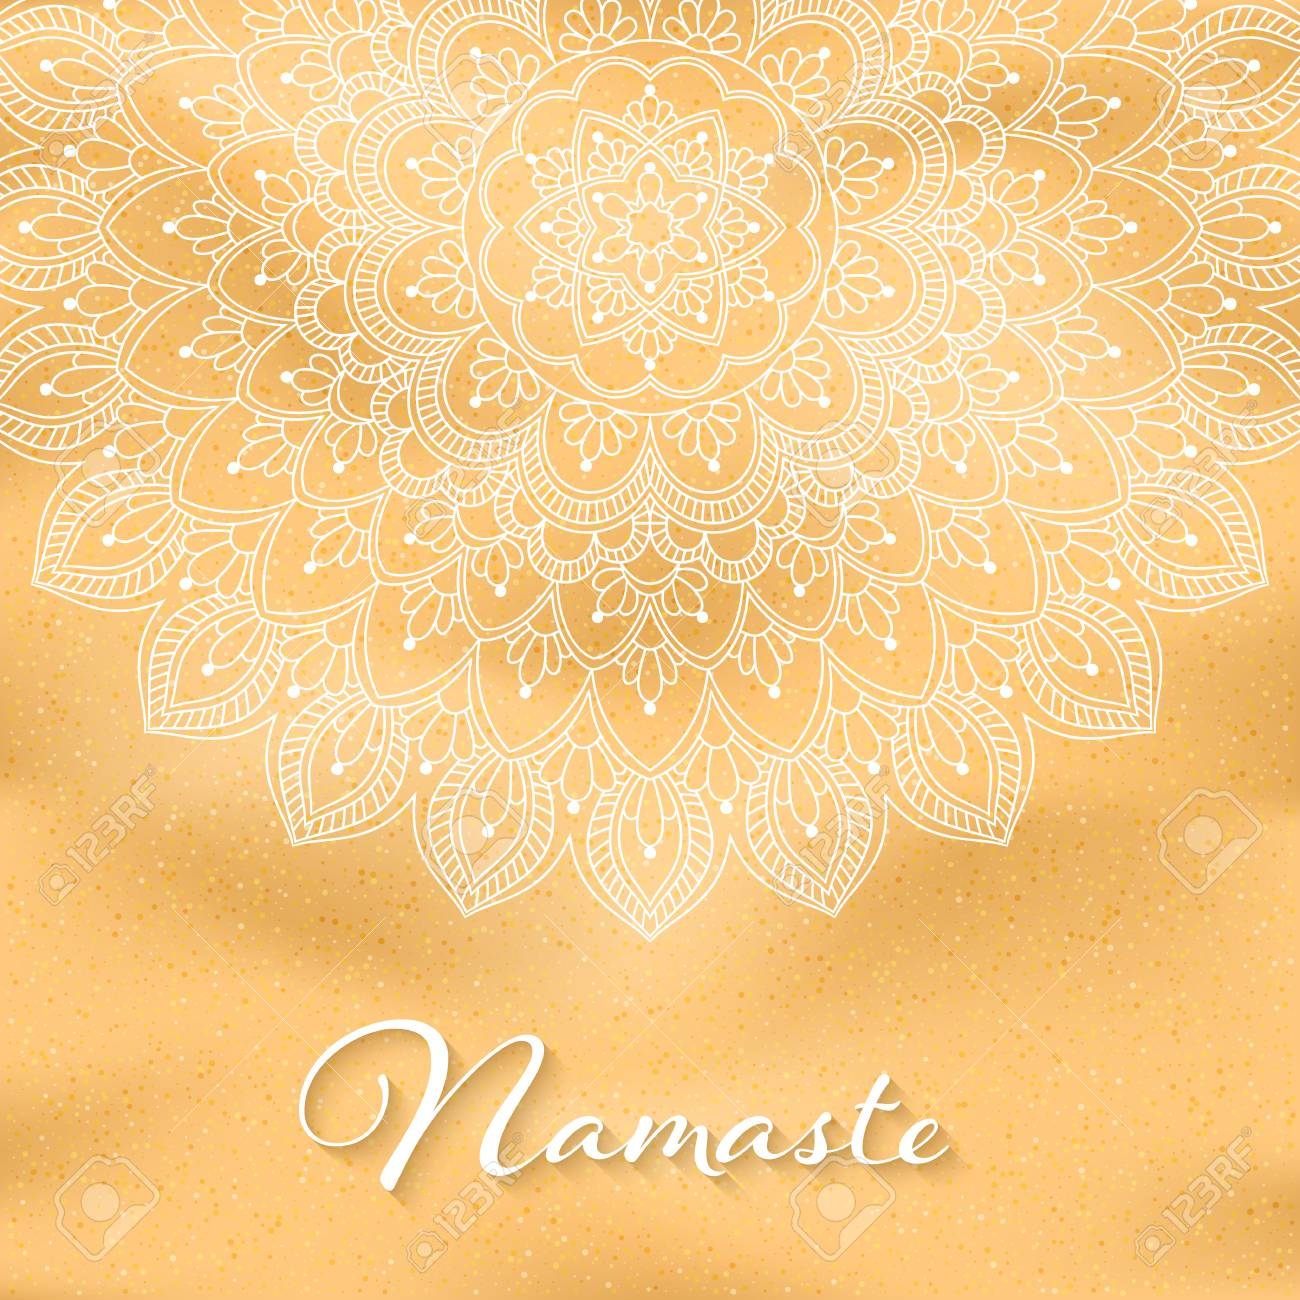 Flyer Or Brochure Template With Hand Drawn Mandala Pattern On Seashore  Background. Yoga Classes Banner